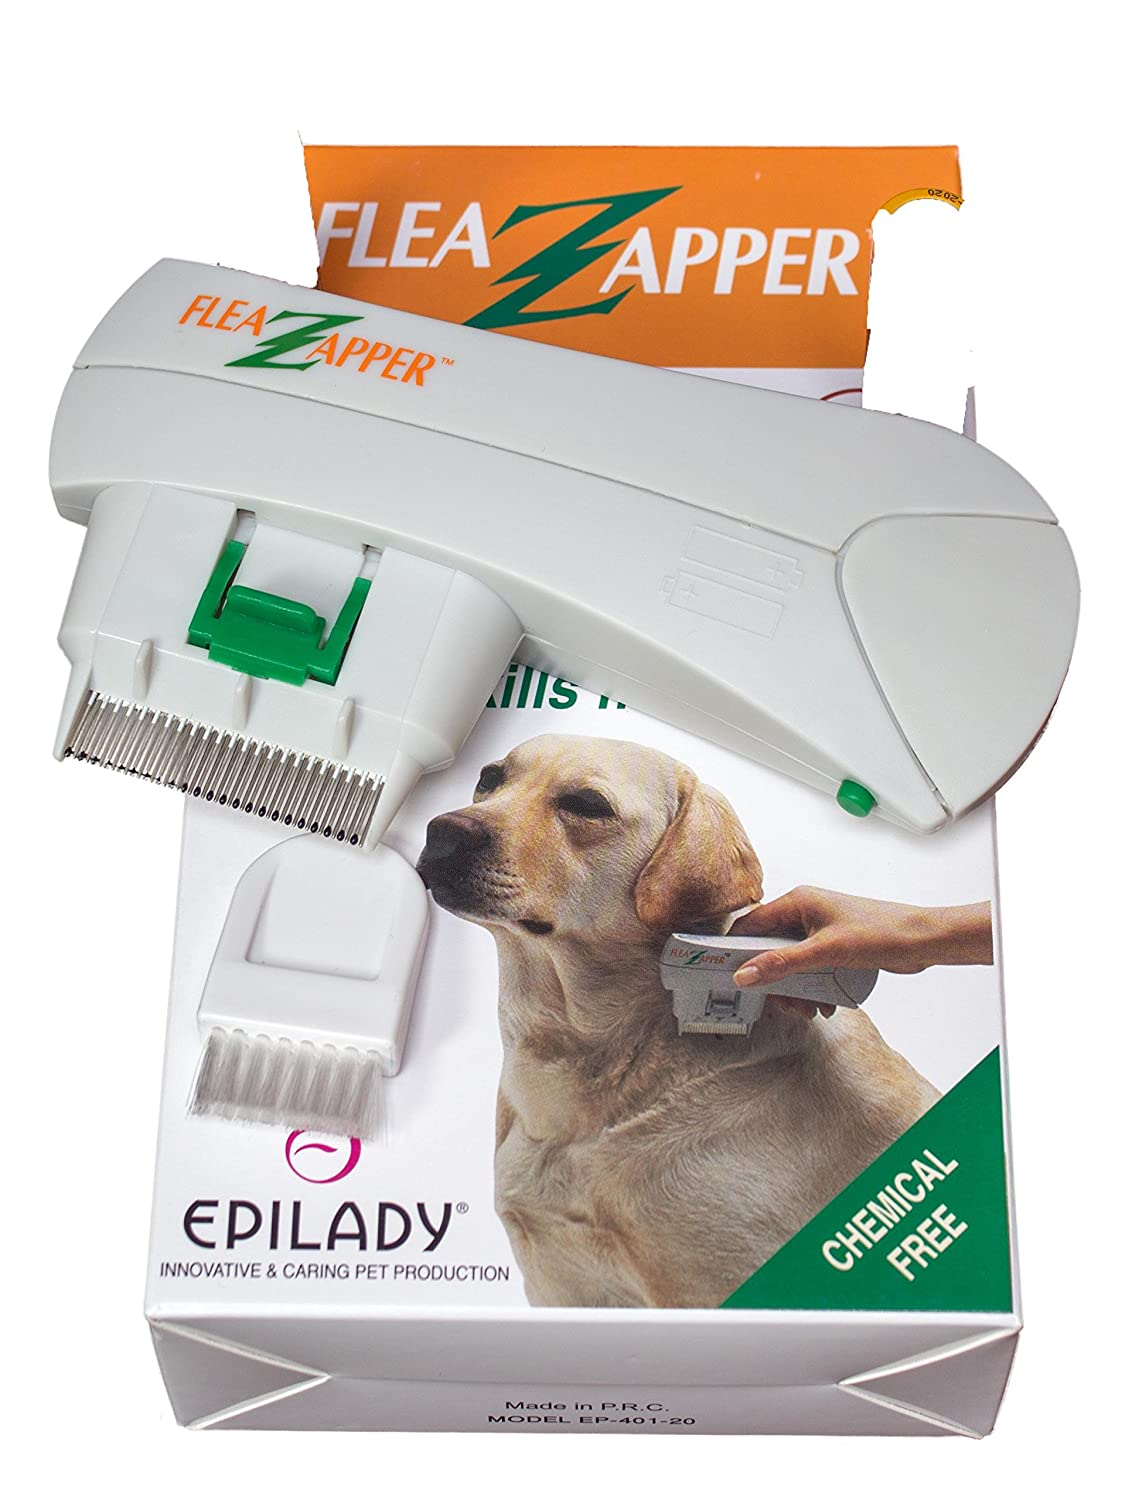 Electronic Flea Comb Zapper Epilady Electric Killer Safe For Thdogrepellentelectroniccircuitsjpg Cats Dogs Pets Animals Detects Controls Destroys Kills Fleas No Toxins Or